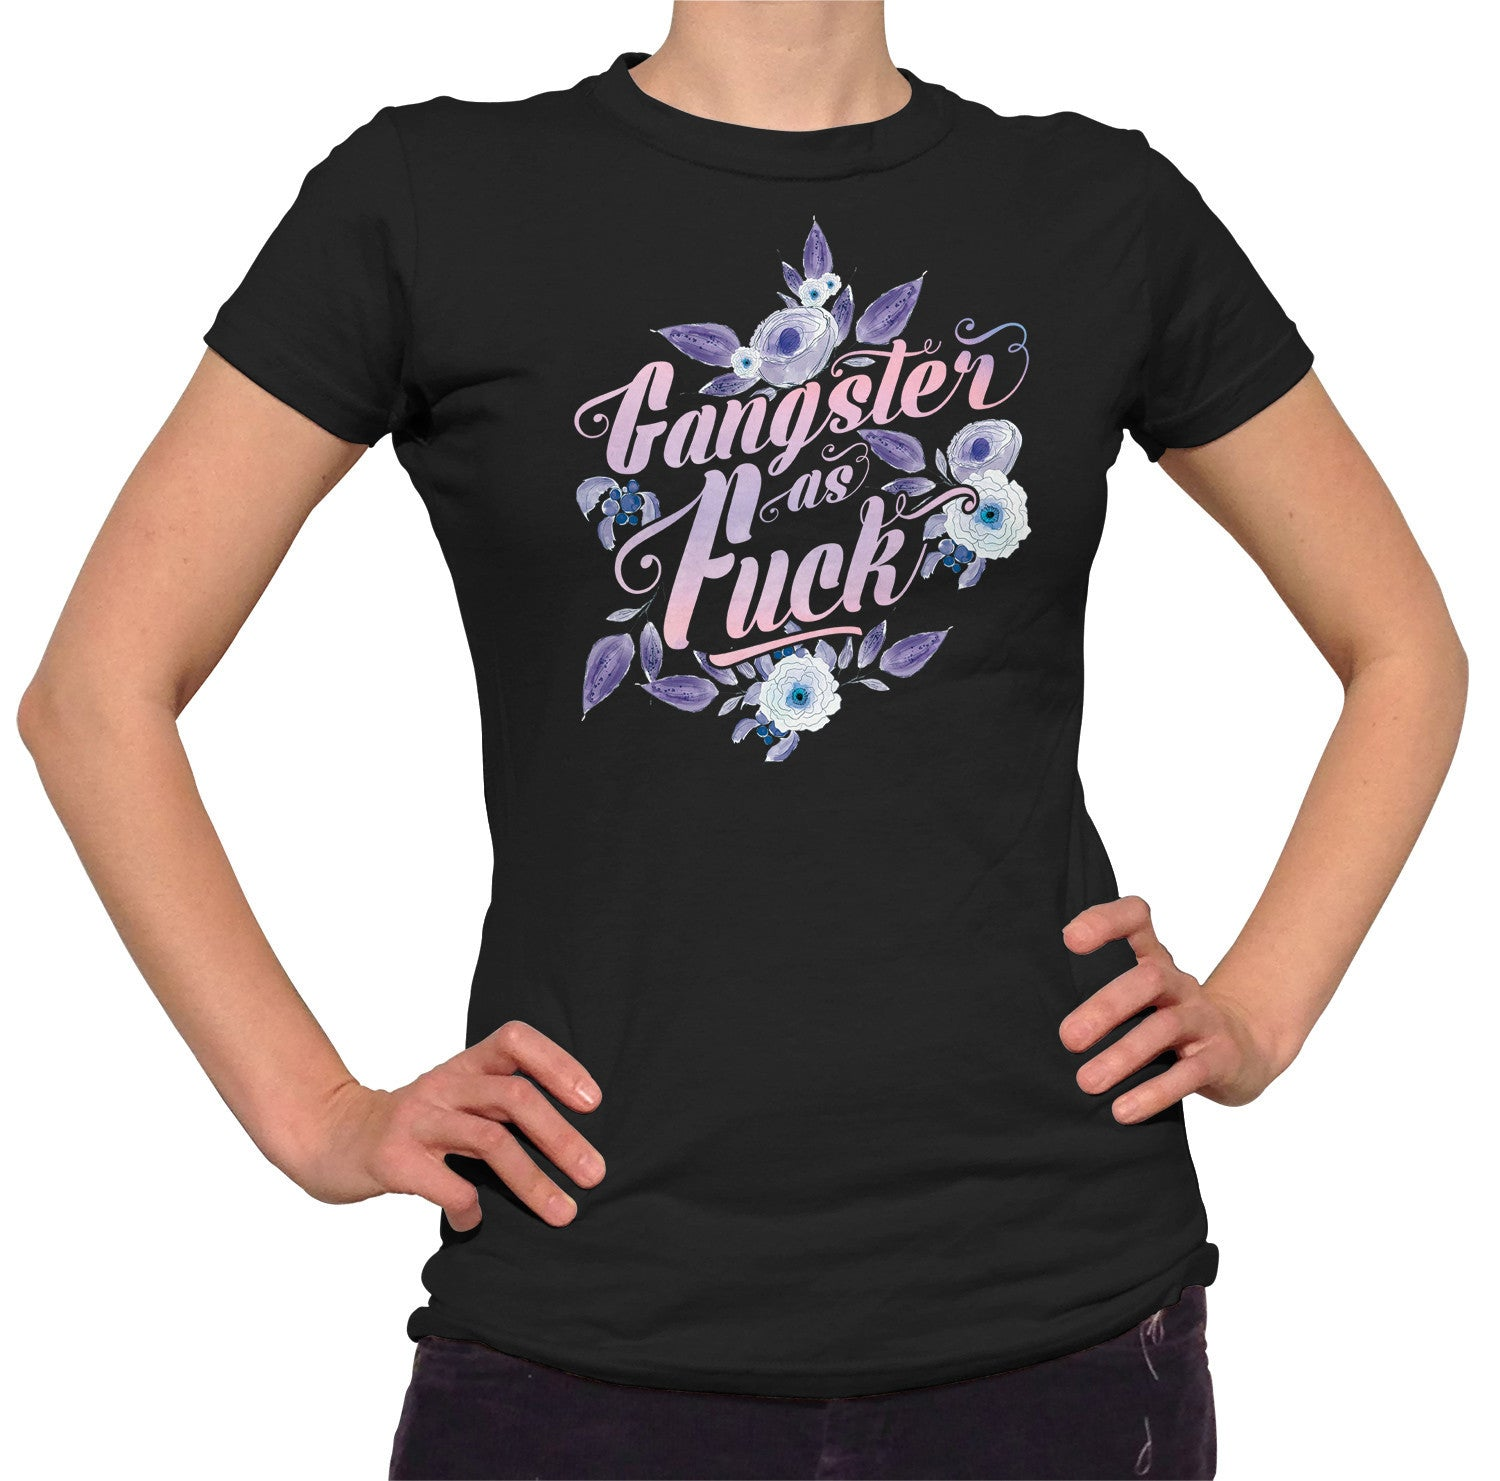 2e31bd9be Women's Gangster As Fuck T-Shirt - Ironic Funny Floral Boho Chic ...